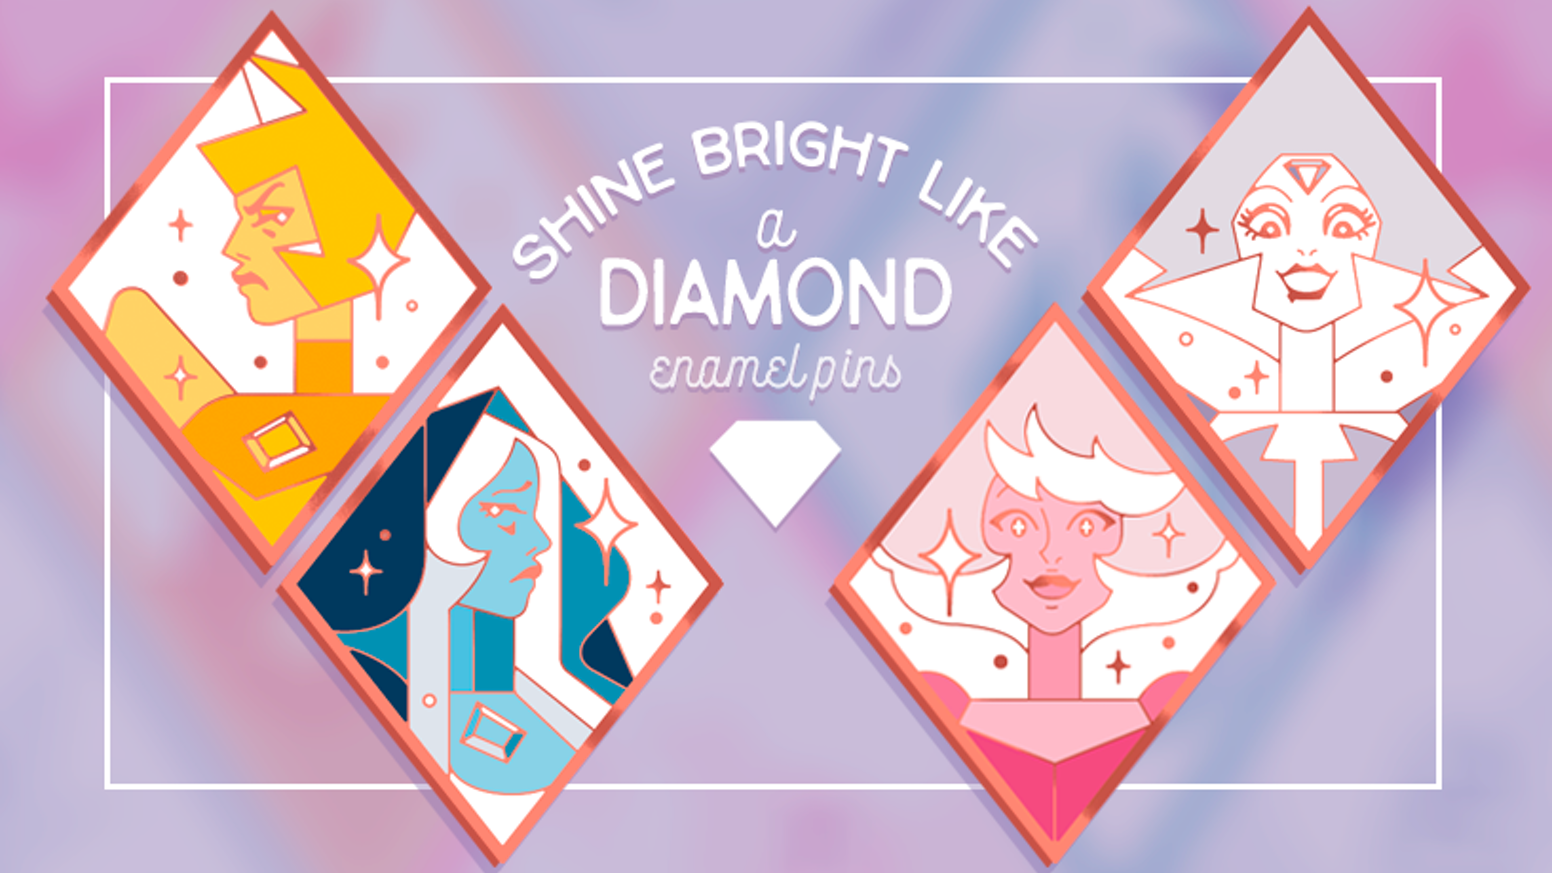 """Shine Bright Like a Diamond"" is a set of hard enamel pins that features the respective Diamond's design from Steven Universe."